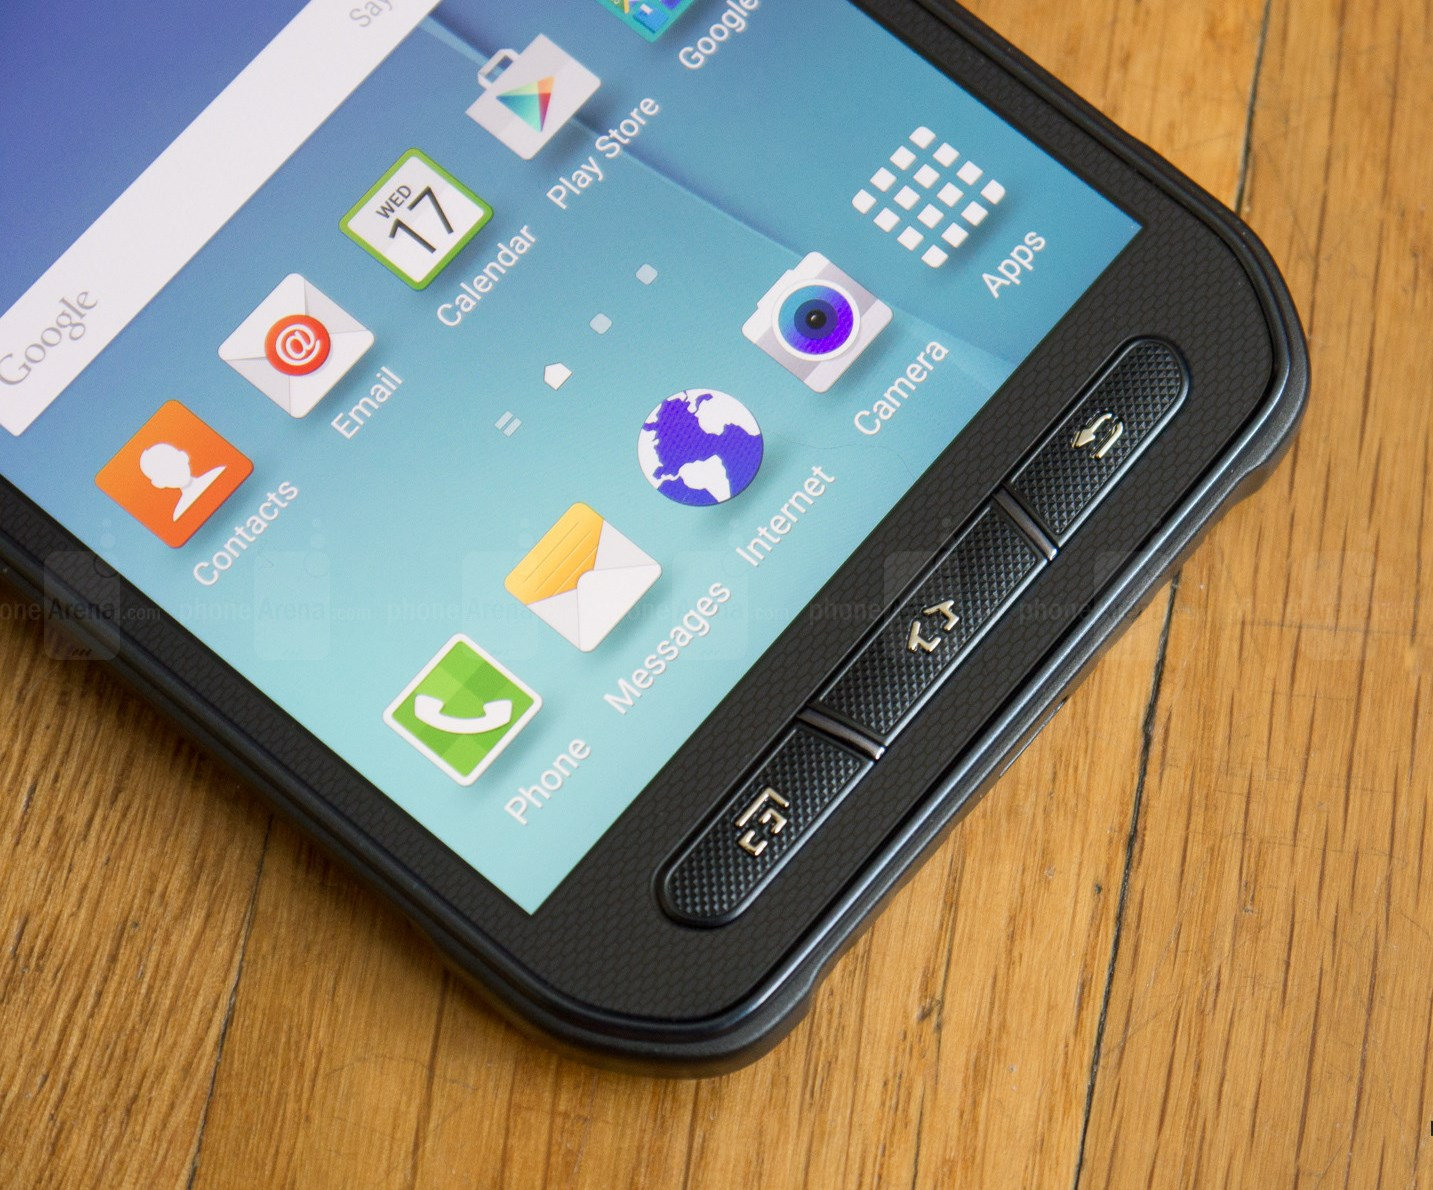 Samsung-Galaxy-S6-Active-Review-004